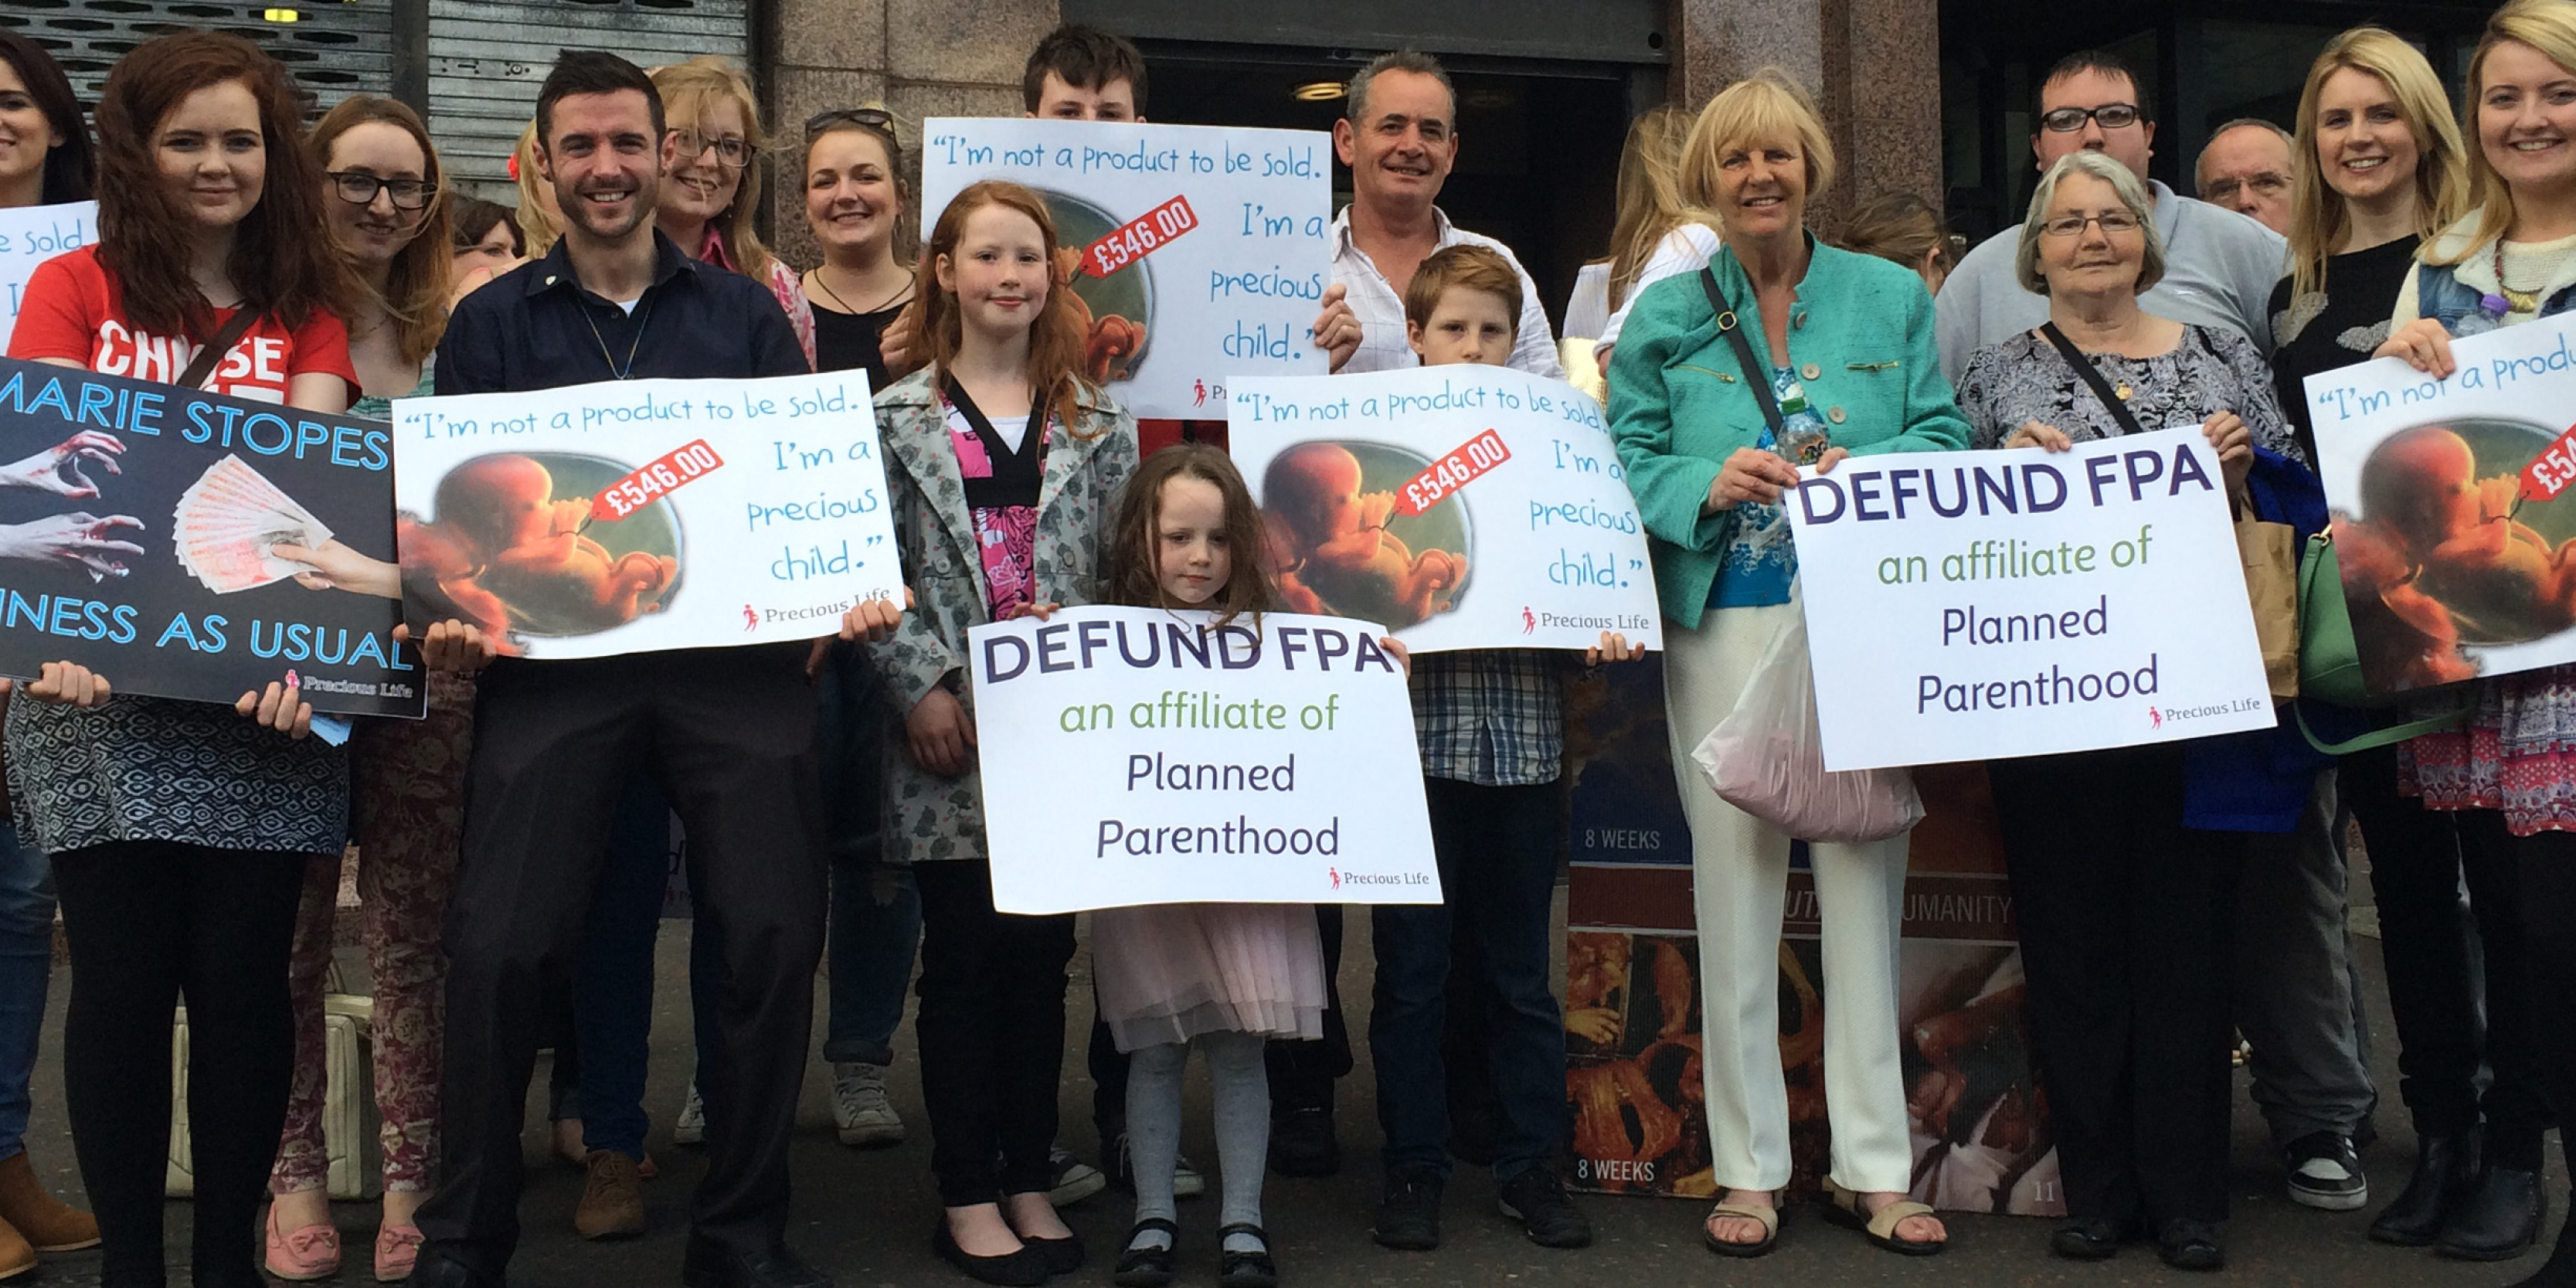 Precious Life Closes Marie Stopes at First #DefundPP Protest!!